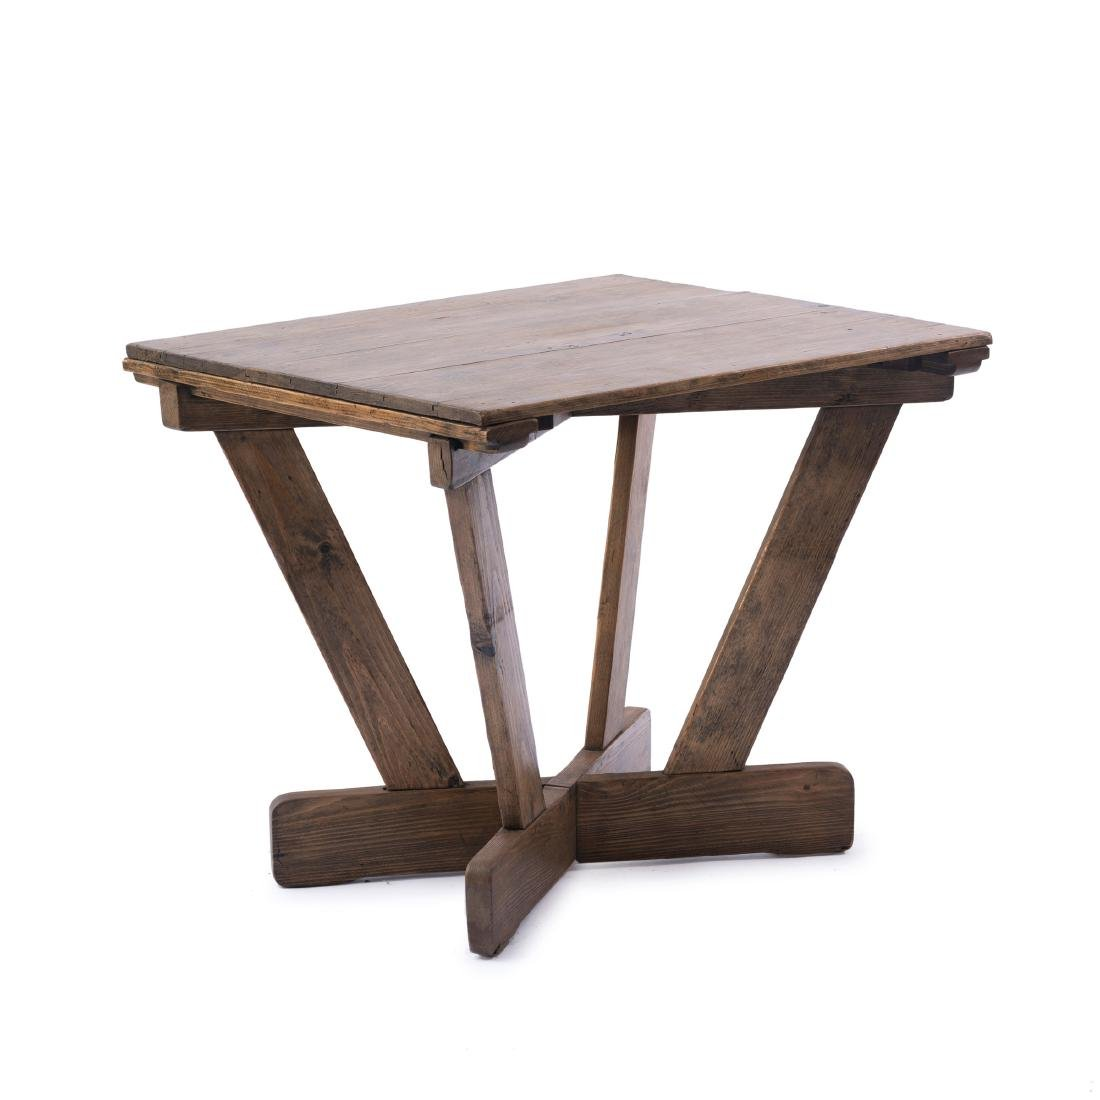 Table, 1930s